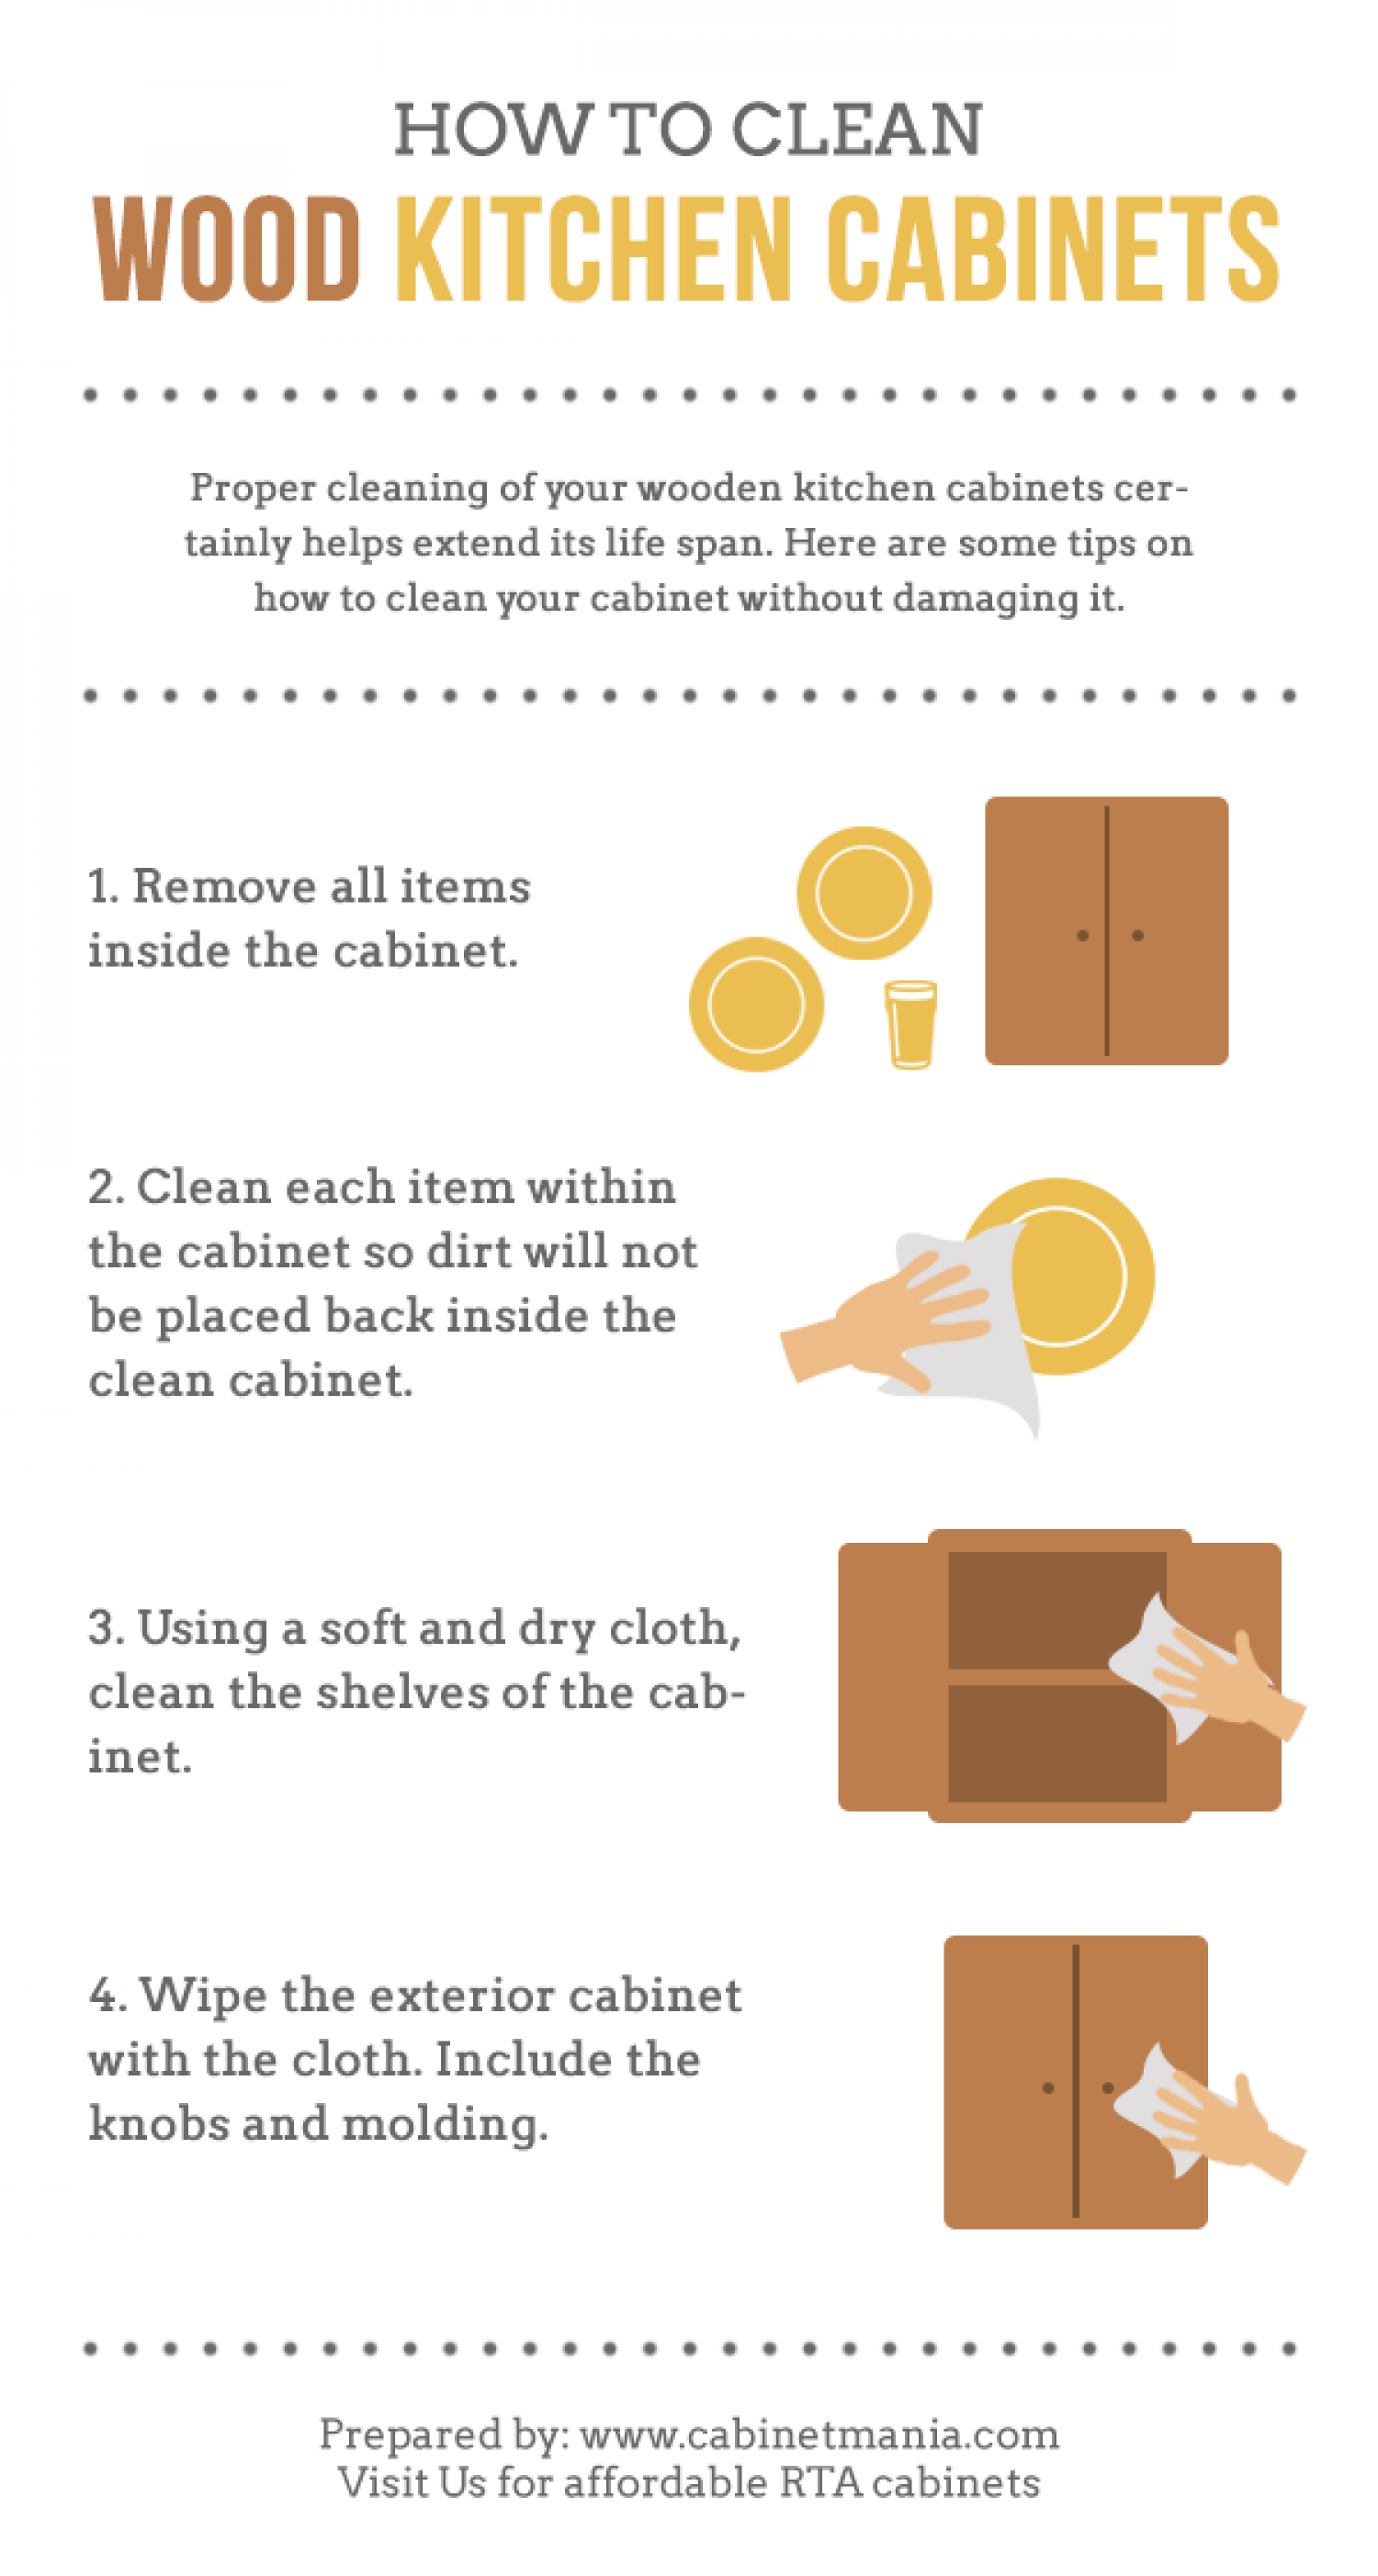 on how to clean wooden kitchen cabinets